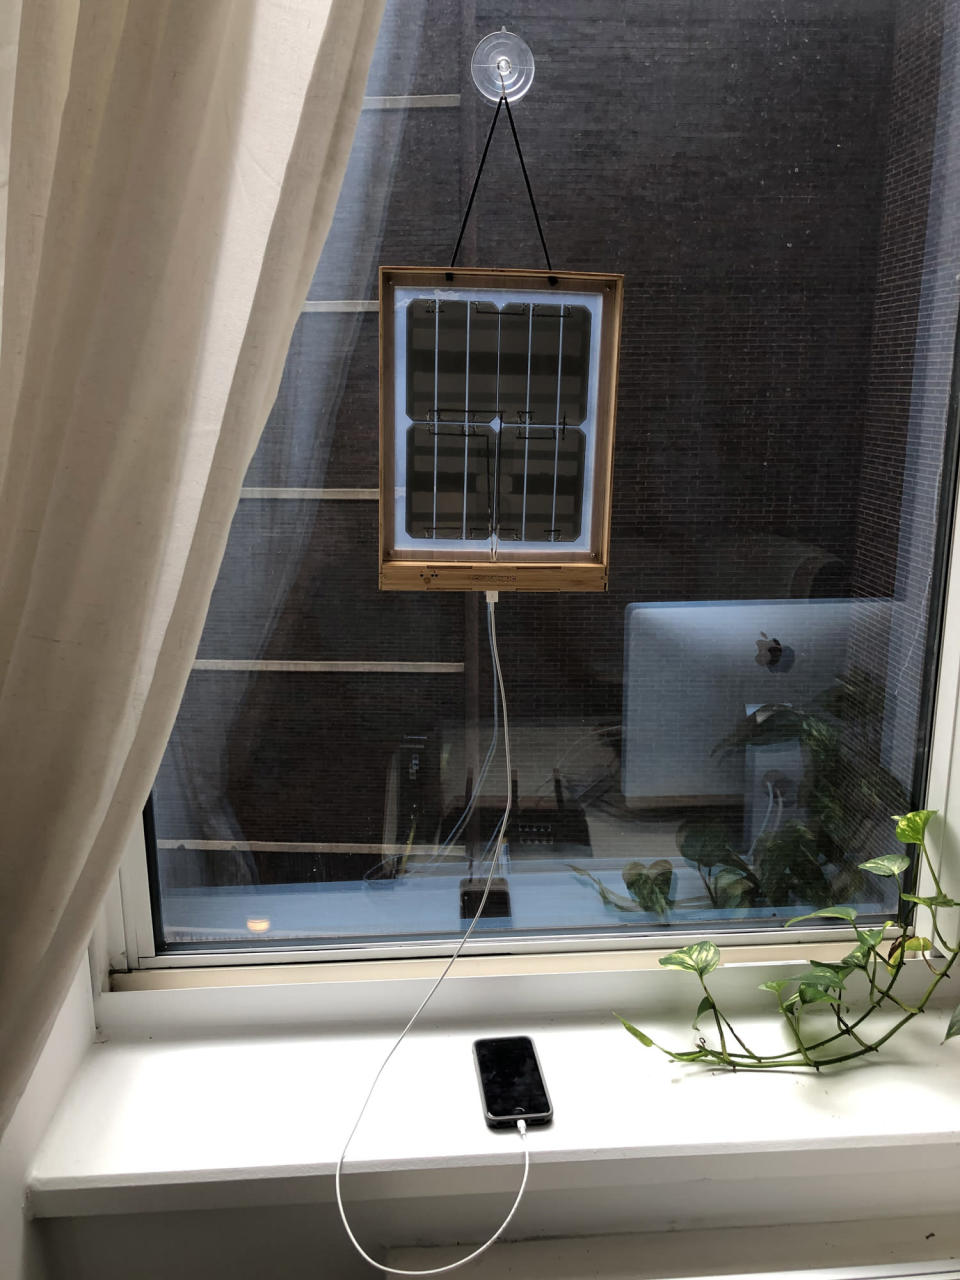 """<p>""""My all-time favorite eco-friendly swap has got to be my window solar charger from <a href=""""https://grouphugtech.com/products/window-solar-charger"""" rel=""""nofollow noopener"""" target=""""_blank"""" data-ylk=""""slk:Grouphug"""" class=""""link rapid-noclick-resp"""">Grouphug</a>. All you need to do is hang it in a sunny spot in your home and you can use solar energy to charge any of your electronic devices. I use it to charge my phone and iPad, and everyone who comes over always asks about it. It's an awesome item to gift to friends and family to jumpstart their sustainable journey.""""</p> <p>— <b>Diane J. Cho, Features Editor</b></p>"""